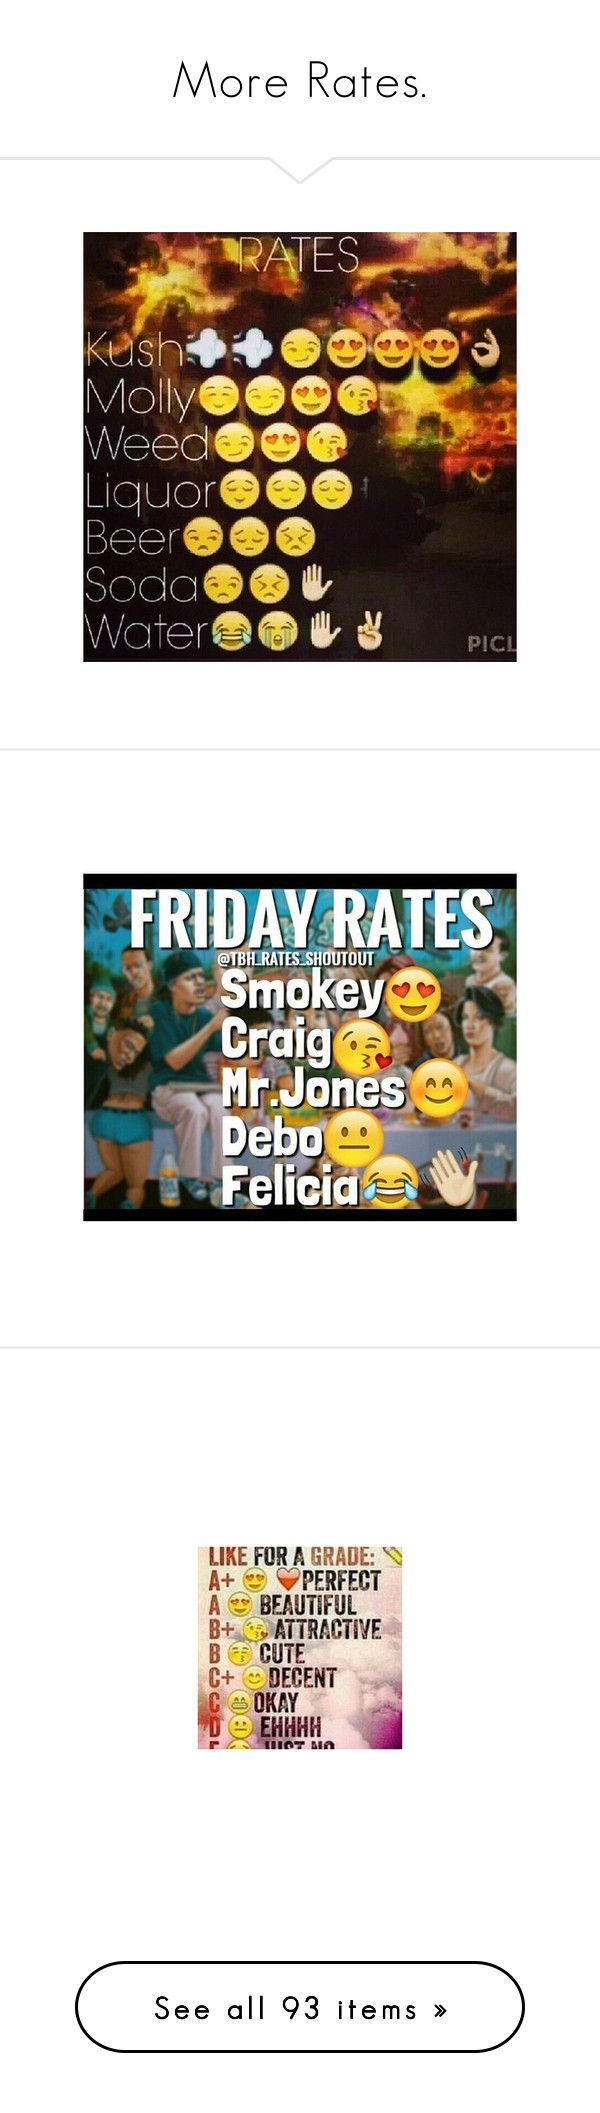 """""""More Rates."""" by flawlessmajestydoe ❤ liked on Polyvore featuring text, emoji, fillers, pictures, quotes, random, rates, tumblr, backgrounds and fillers // backgrounds"""